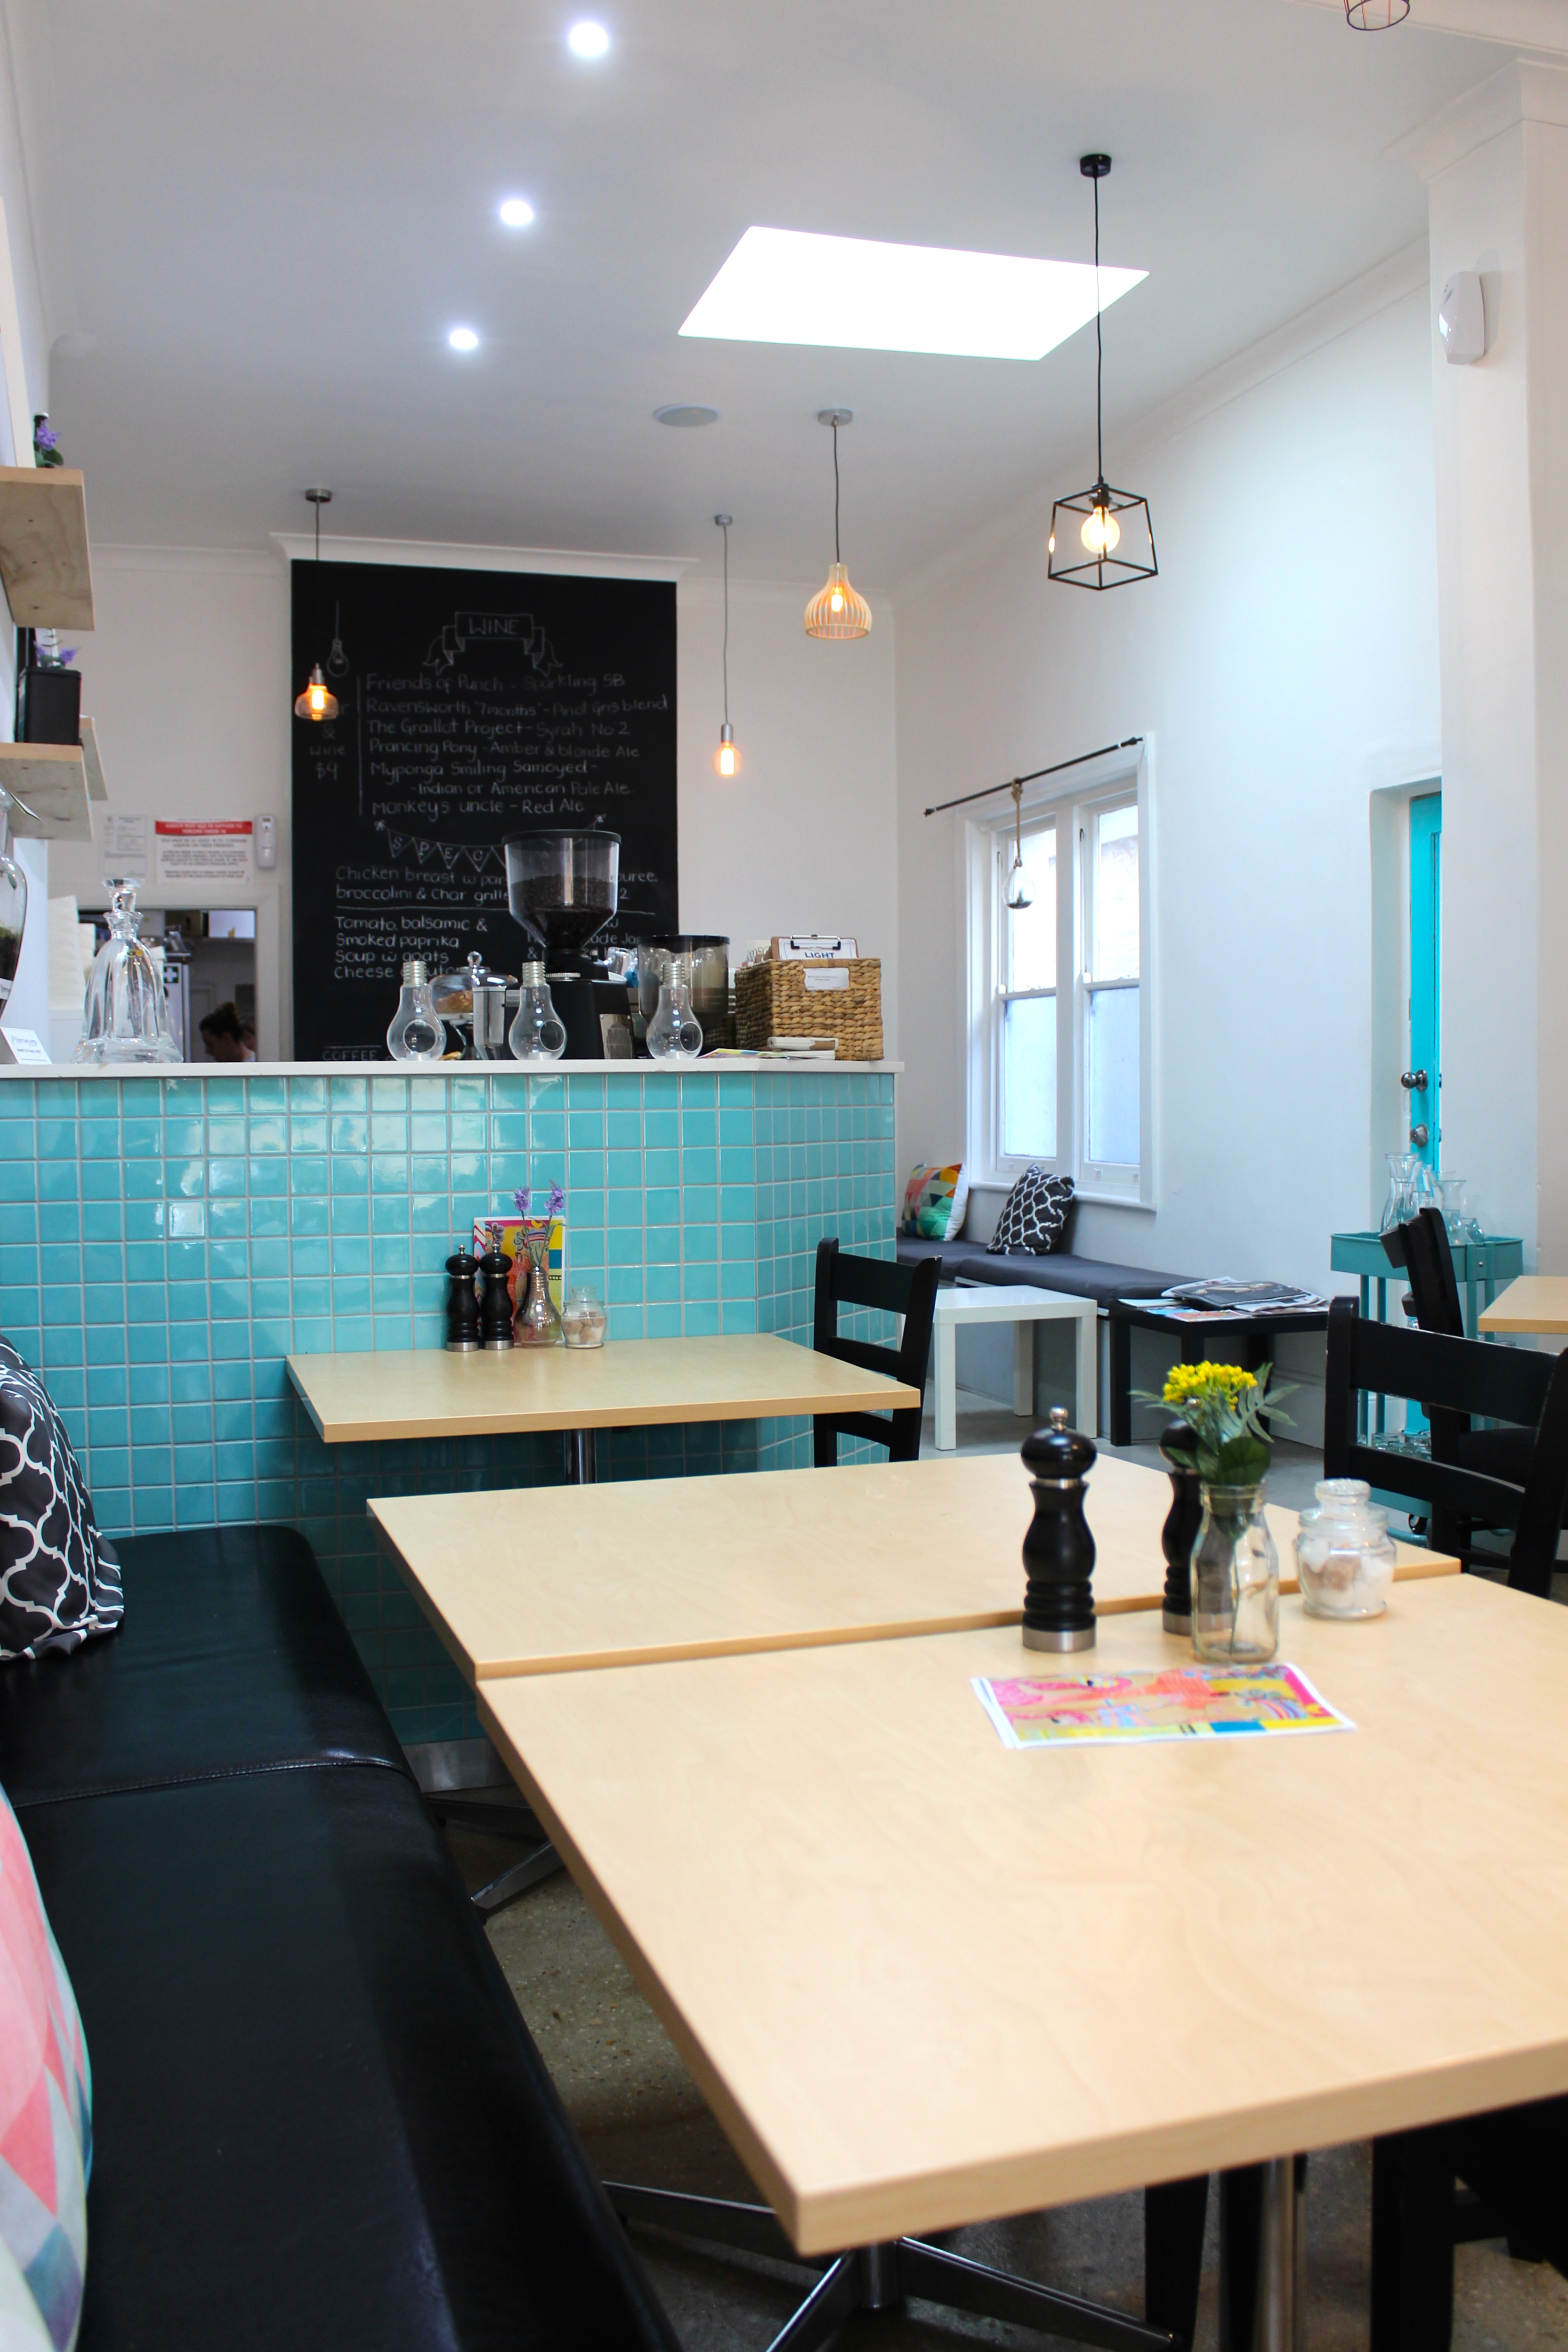 the dcor at the lightbulb caf is fresh and modern with a generous splattering of bright artwork to admire whilst sipping a coffee and chatting with your